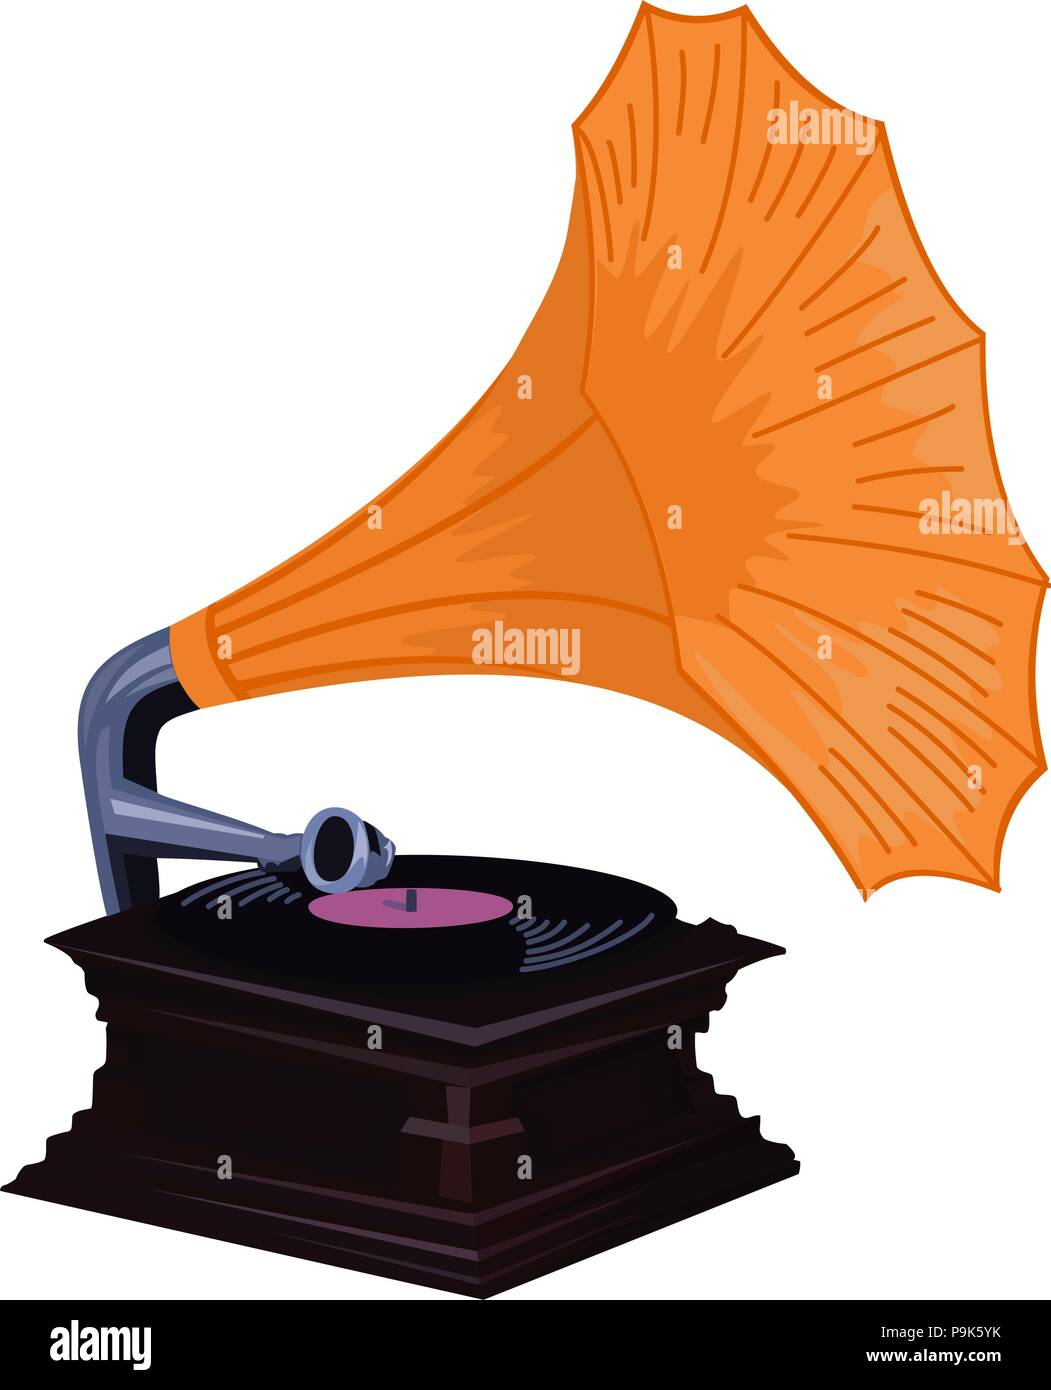 vintage phonograph vector old gramophone digtial graphic with orange shade stock vector image art alamy https www alamy com vintage phonograph vector old gramophone digtial graphic with orange shade image212478103 html